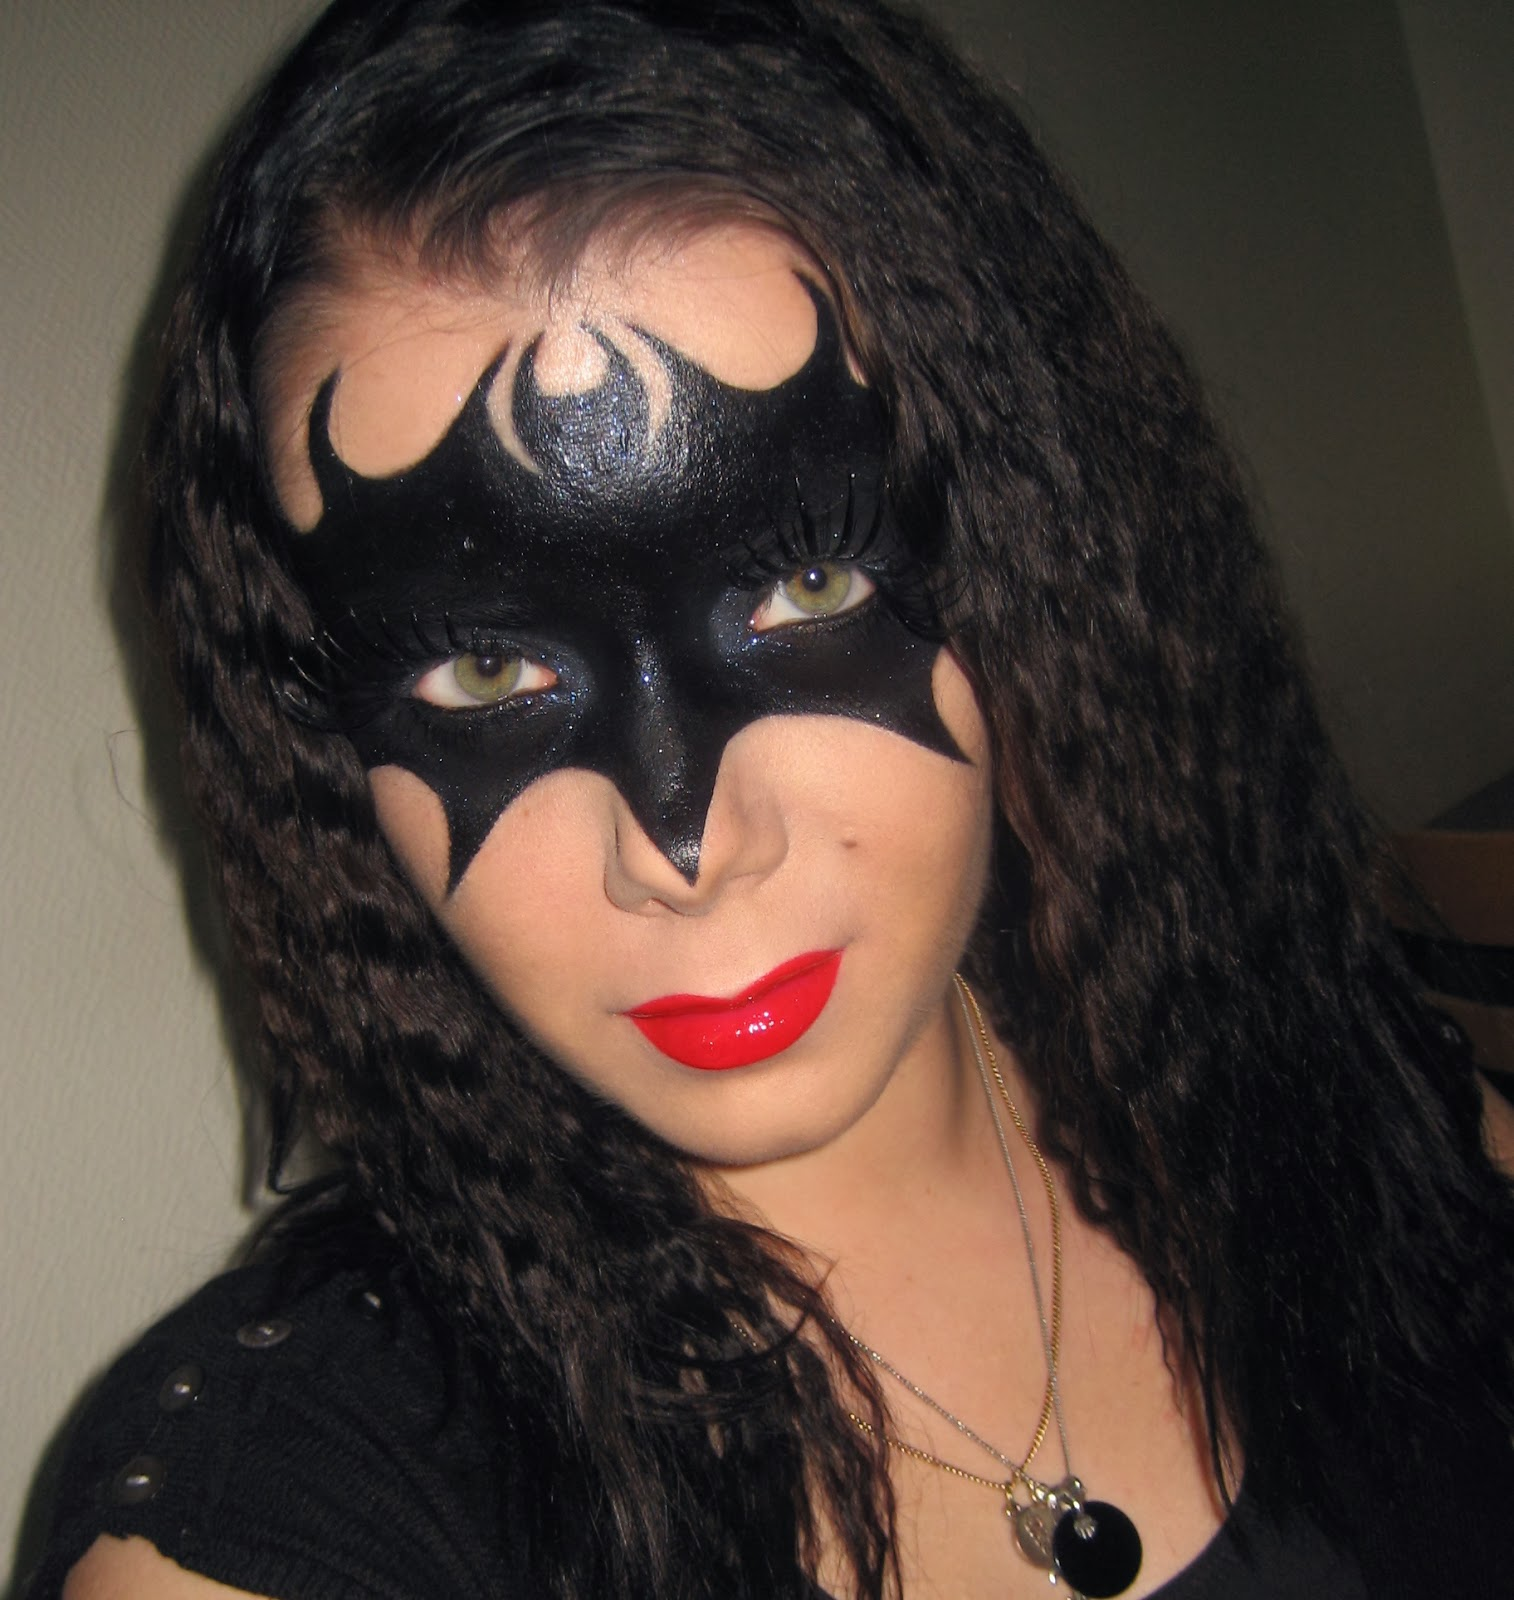 Batman makeup